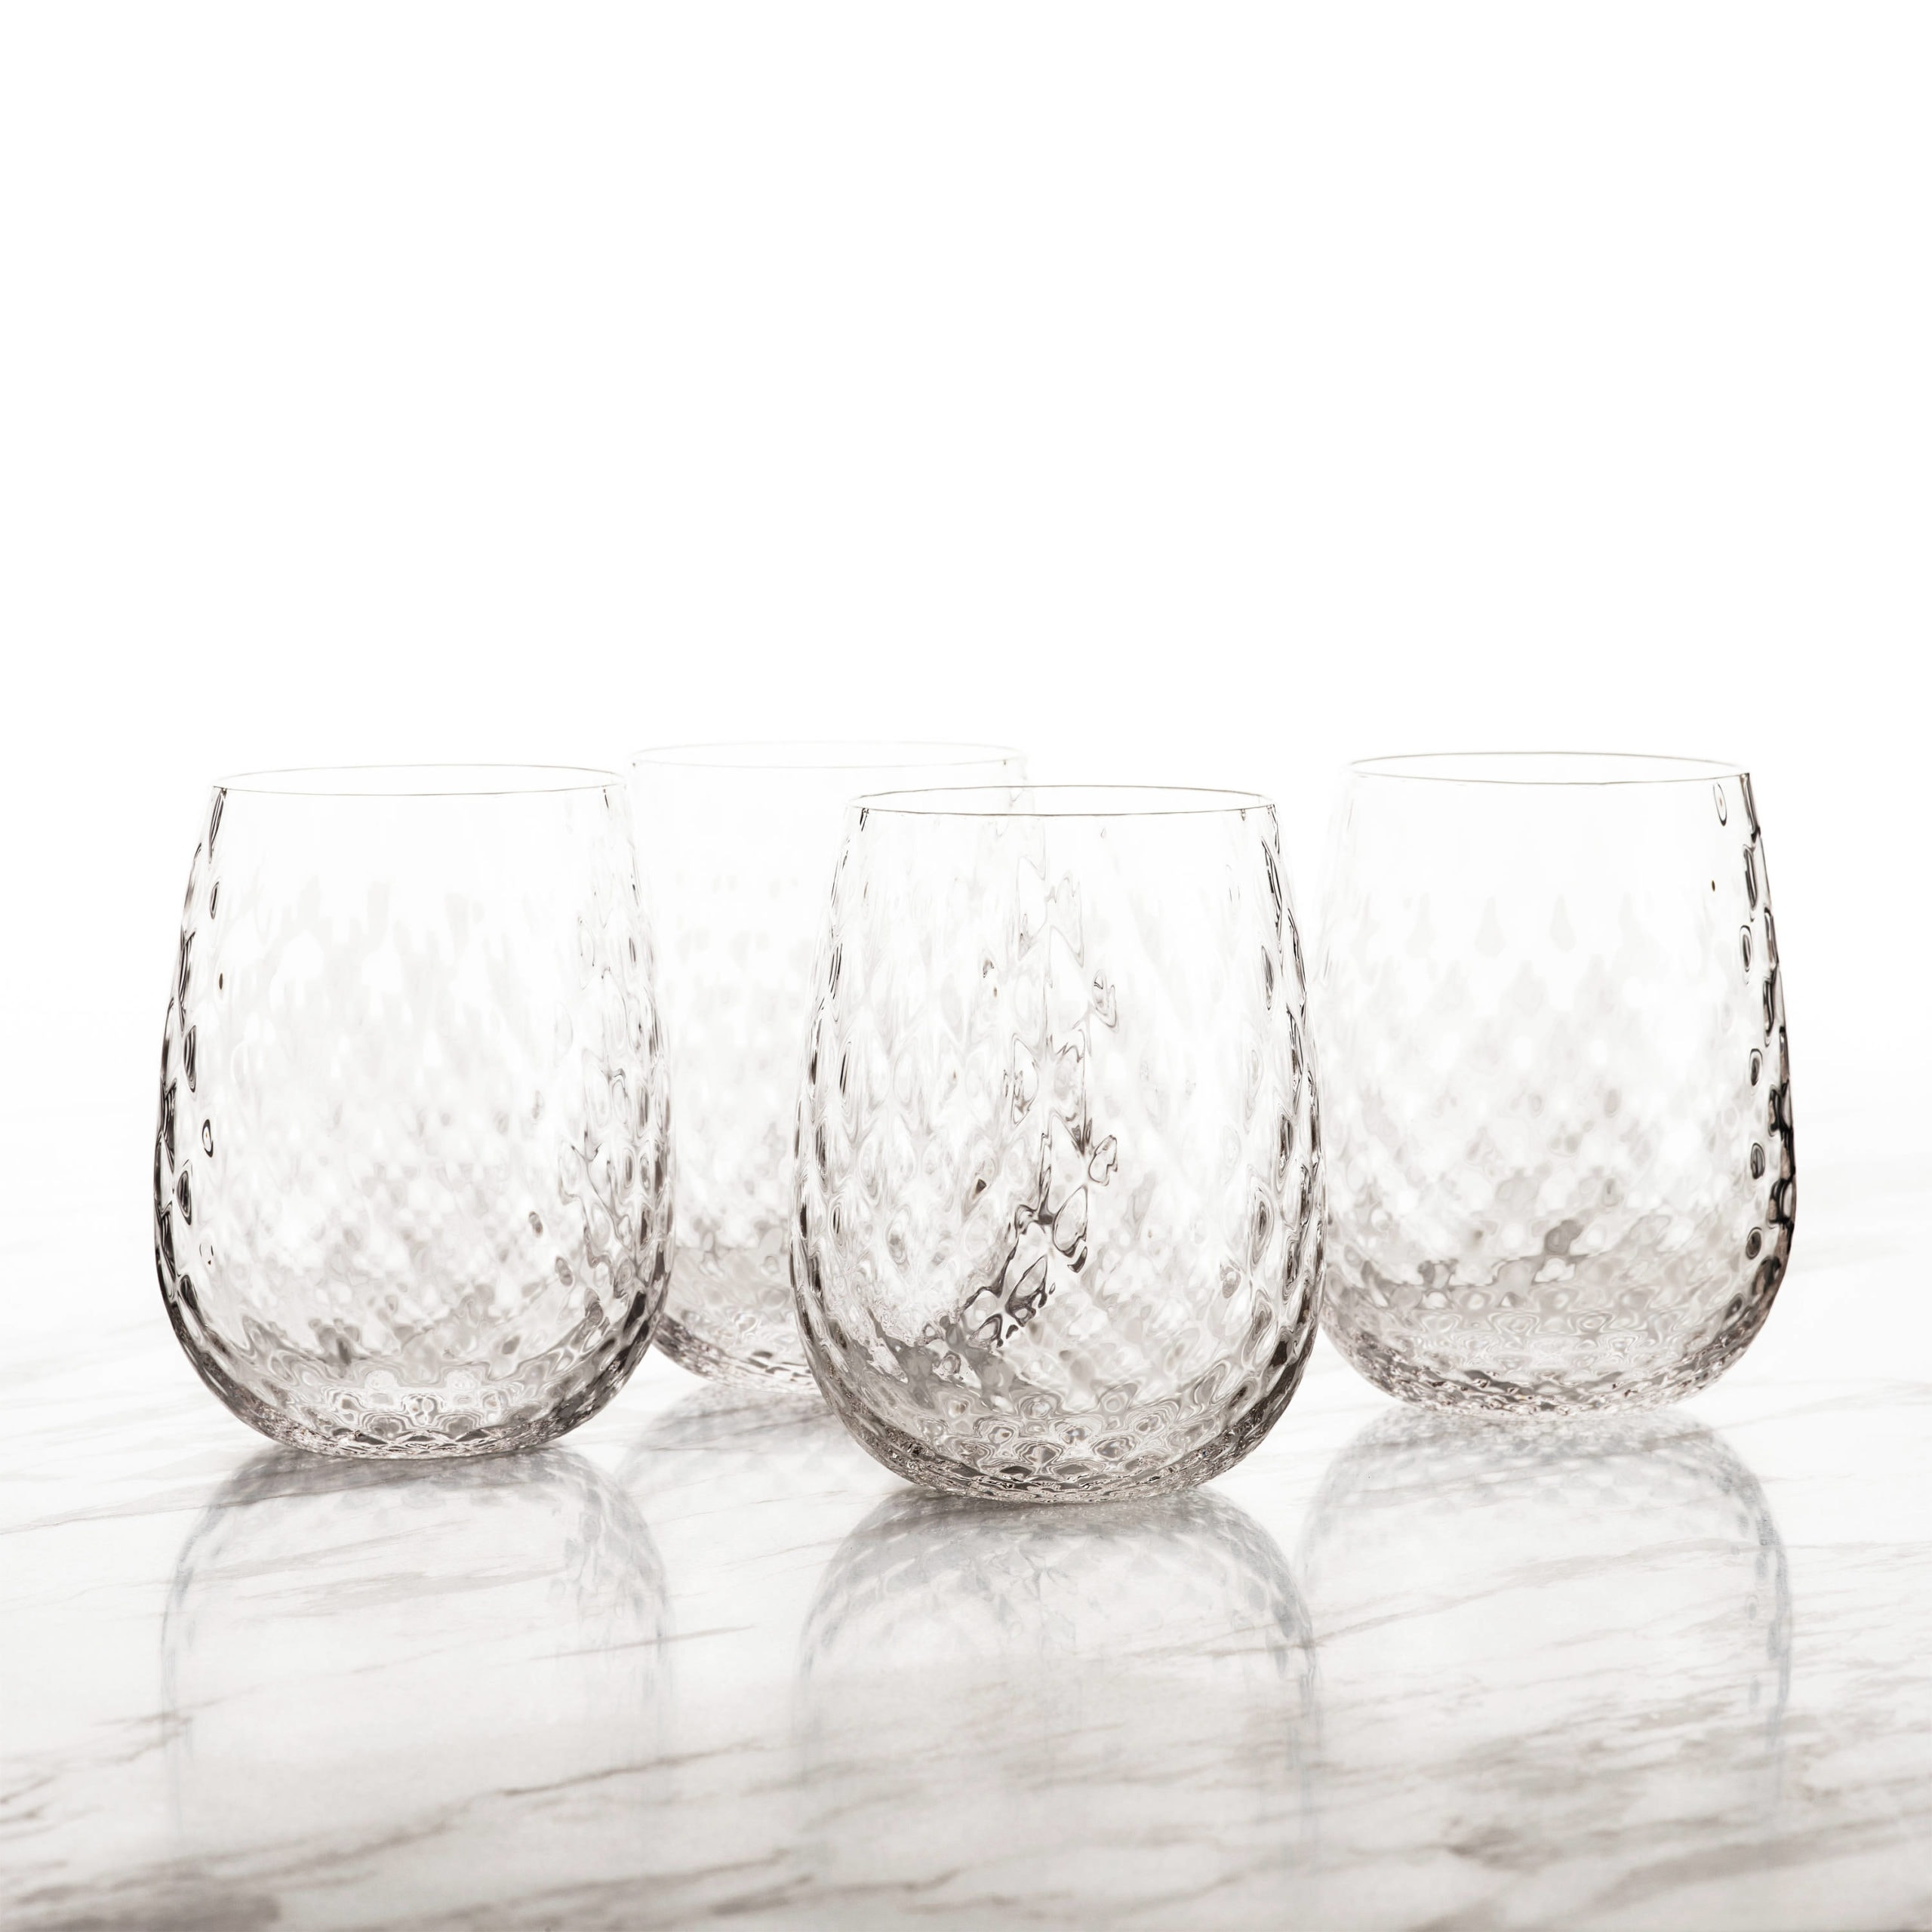 il fullxfull.1374633493 boqy scaled - Stylish Cocktail Gifts for the Home Bar